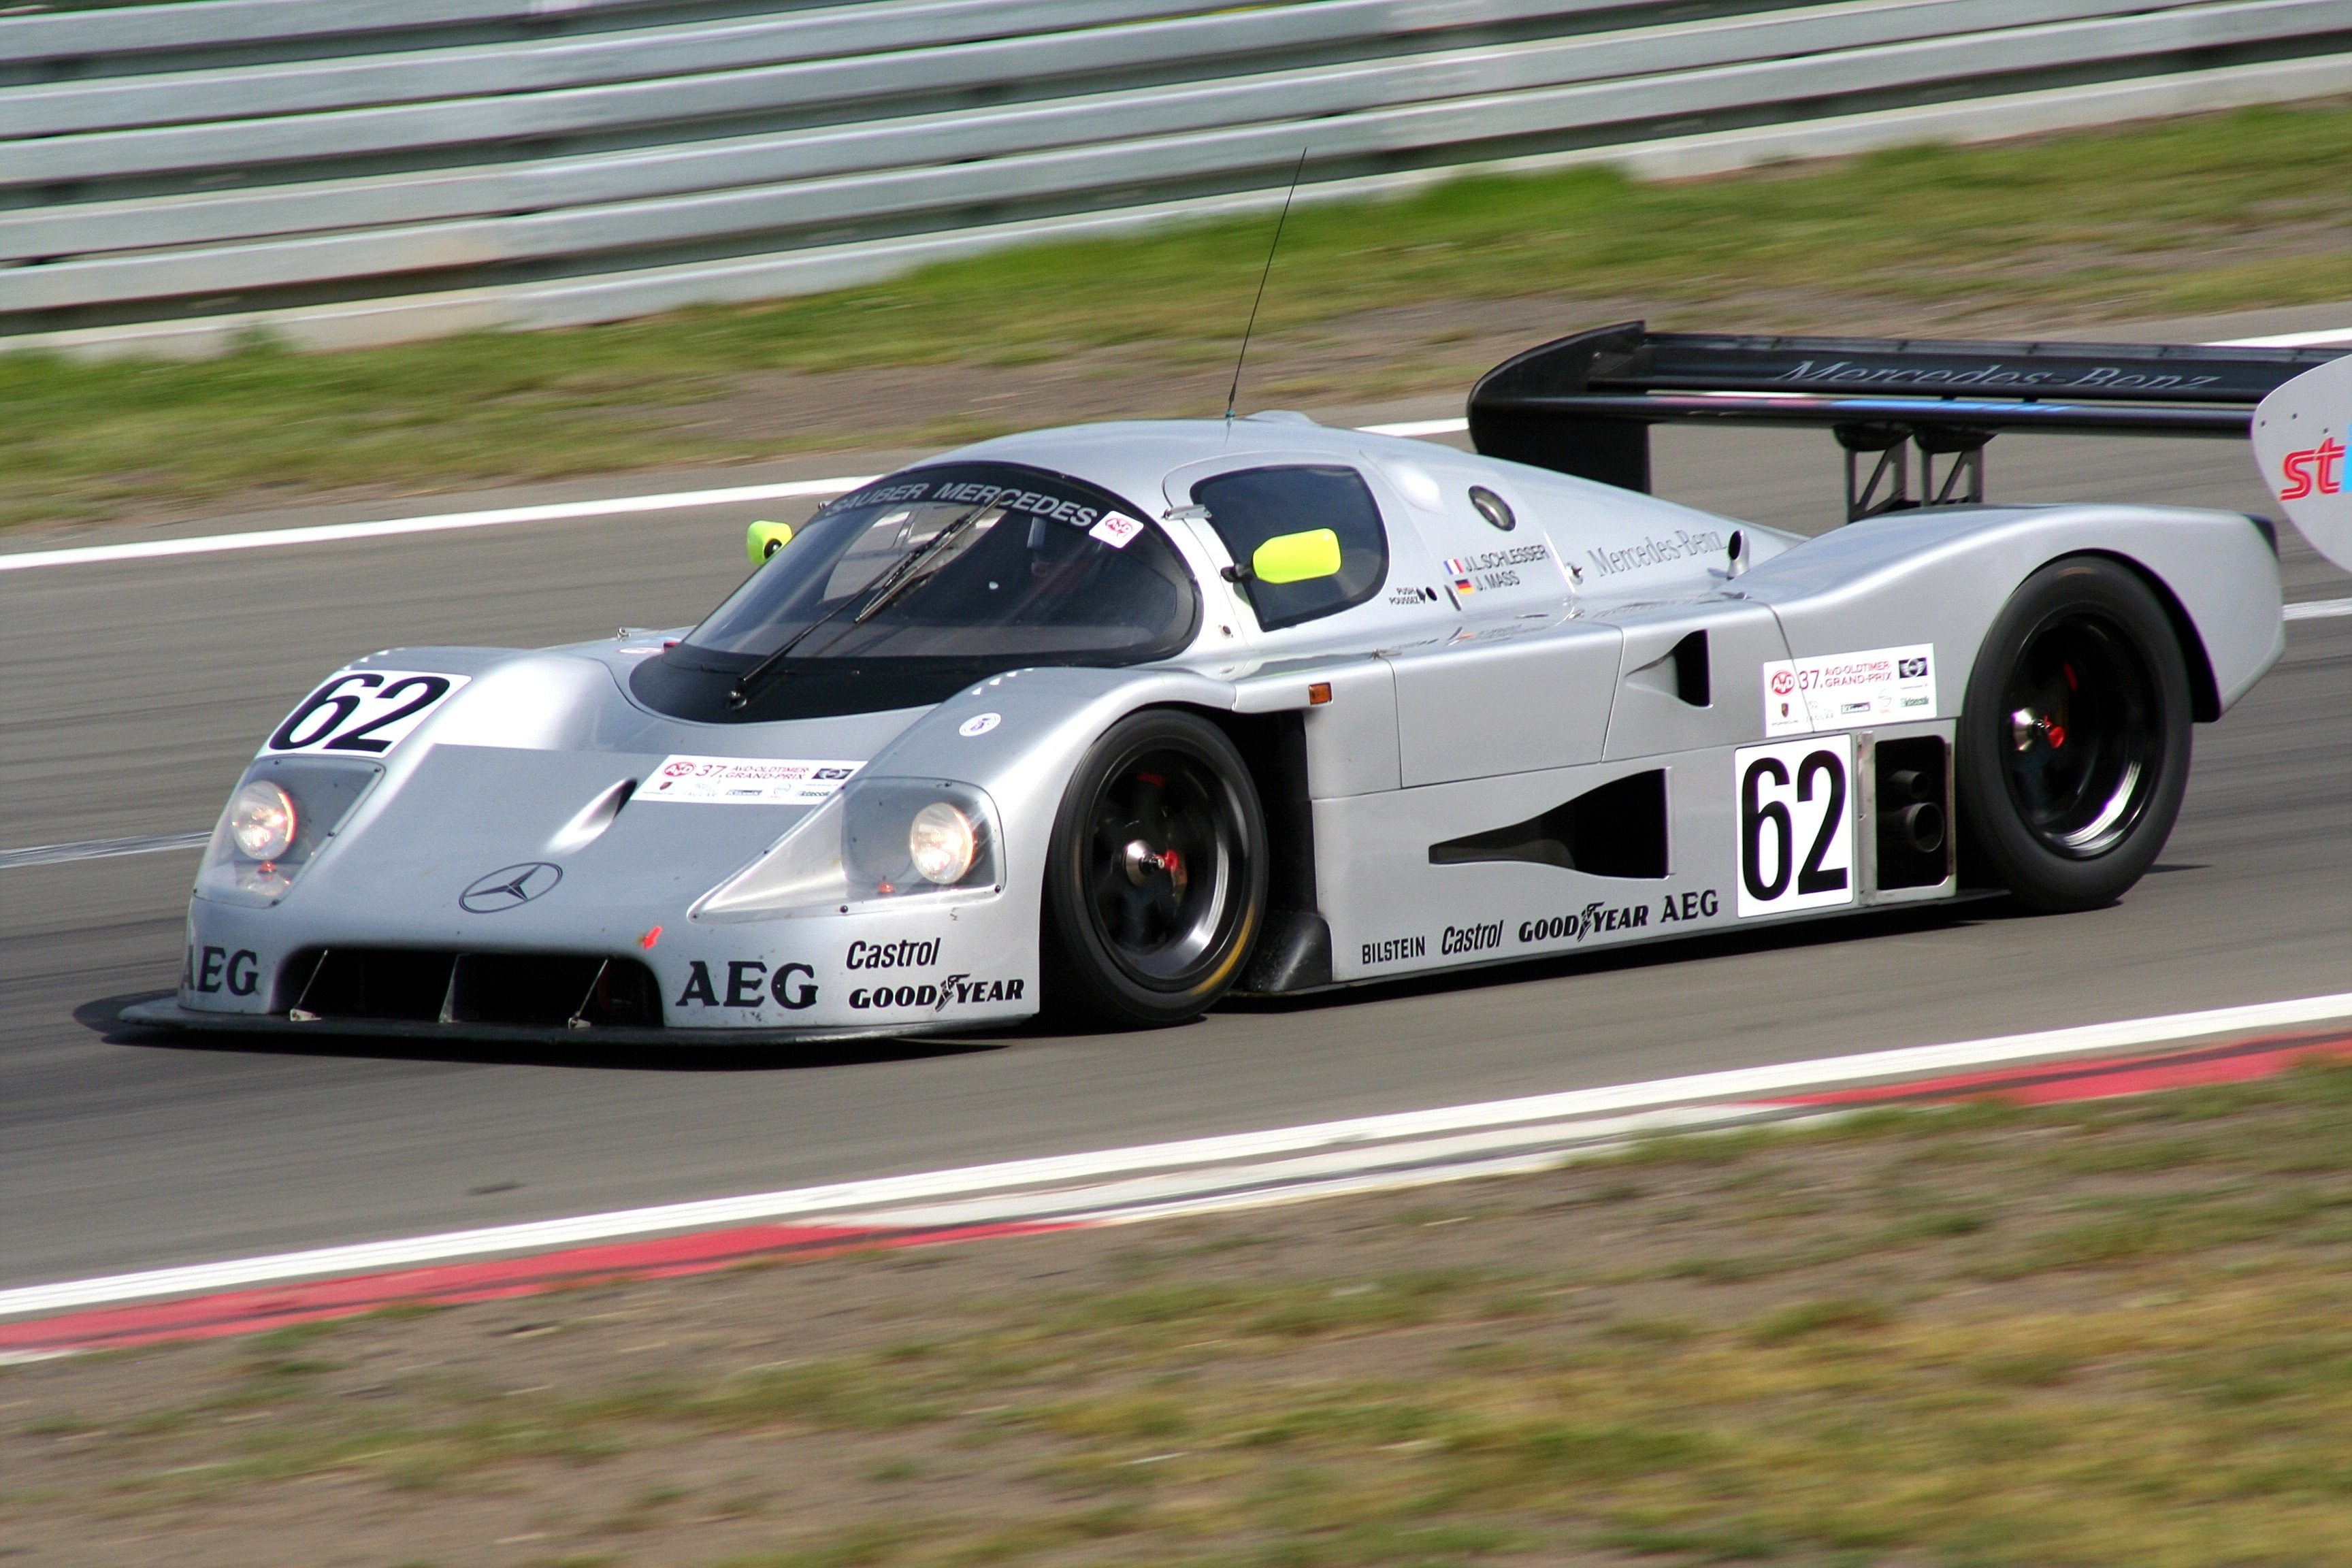 Sauber-Mercedes_C9_Bj._1988_2009-08-07_Sp